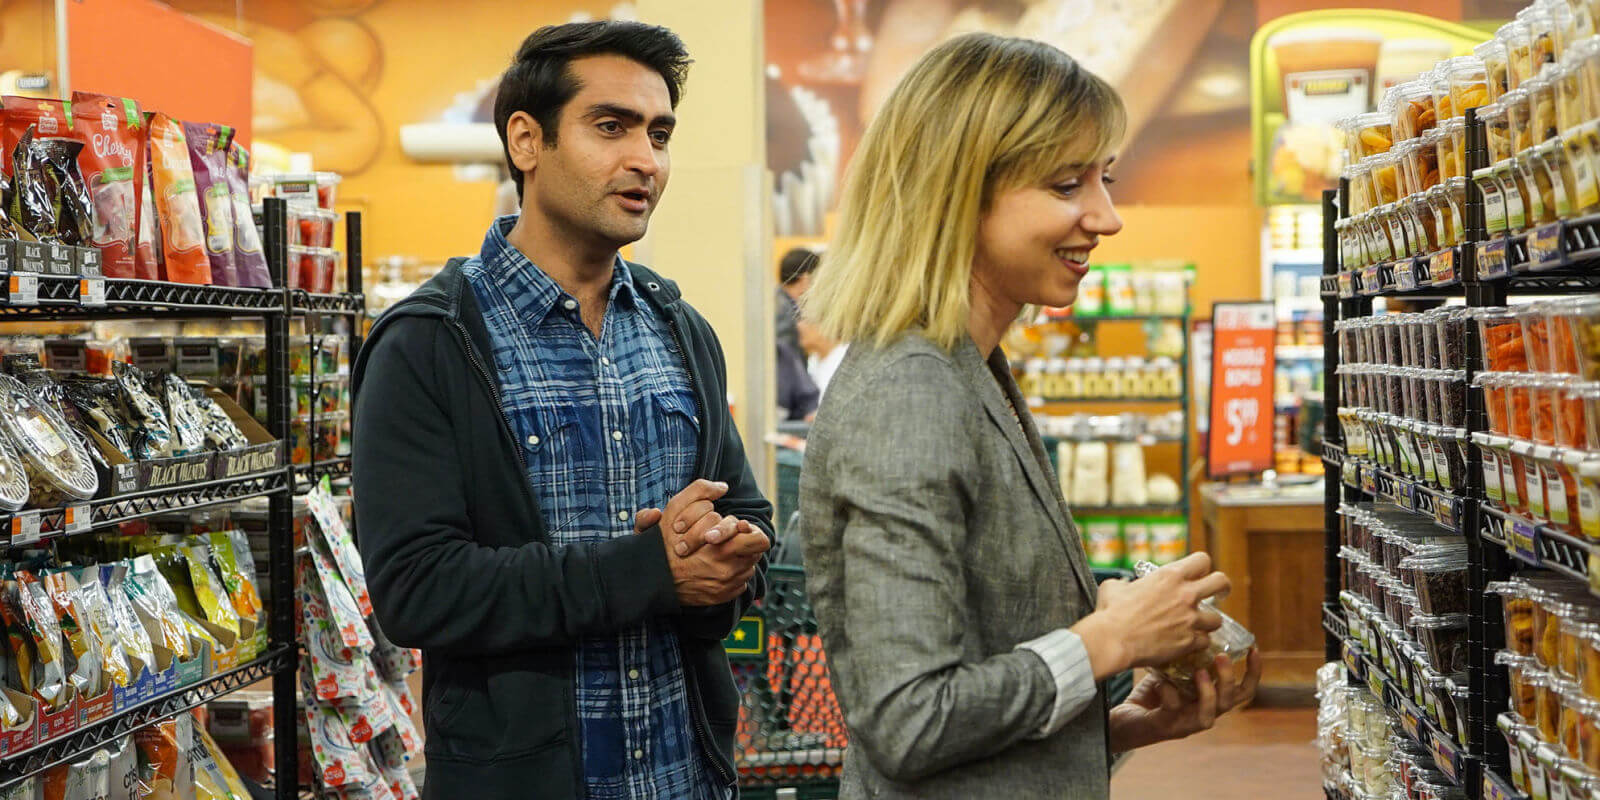 'The Big Sick' is a reminder of what really matters in life and film